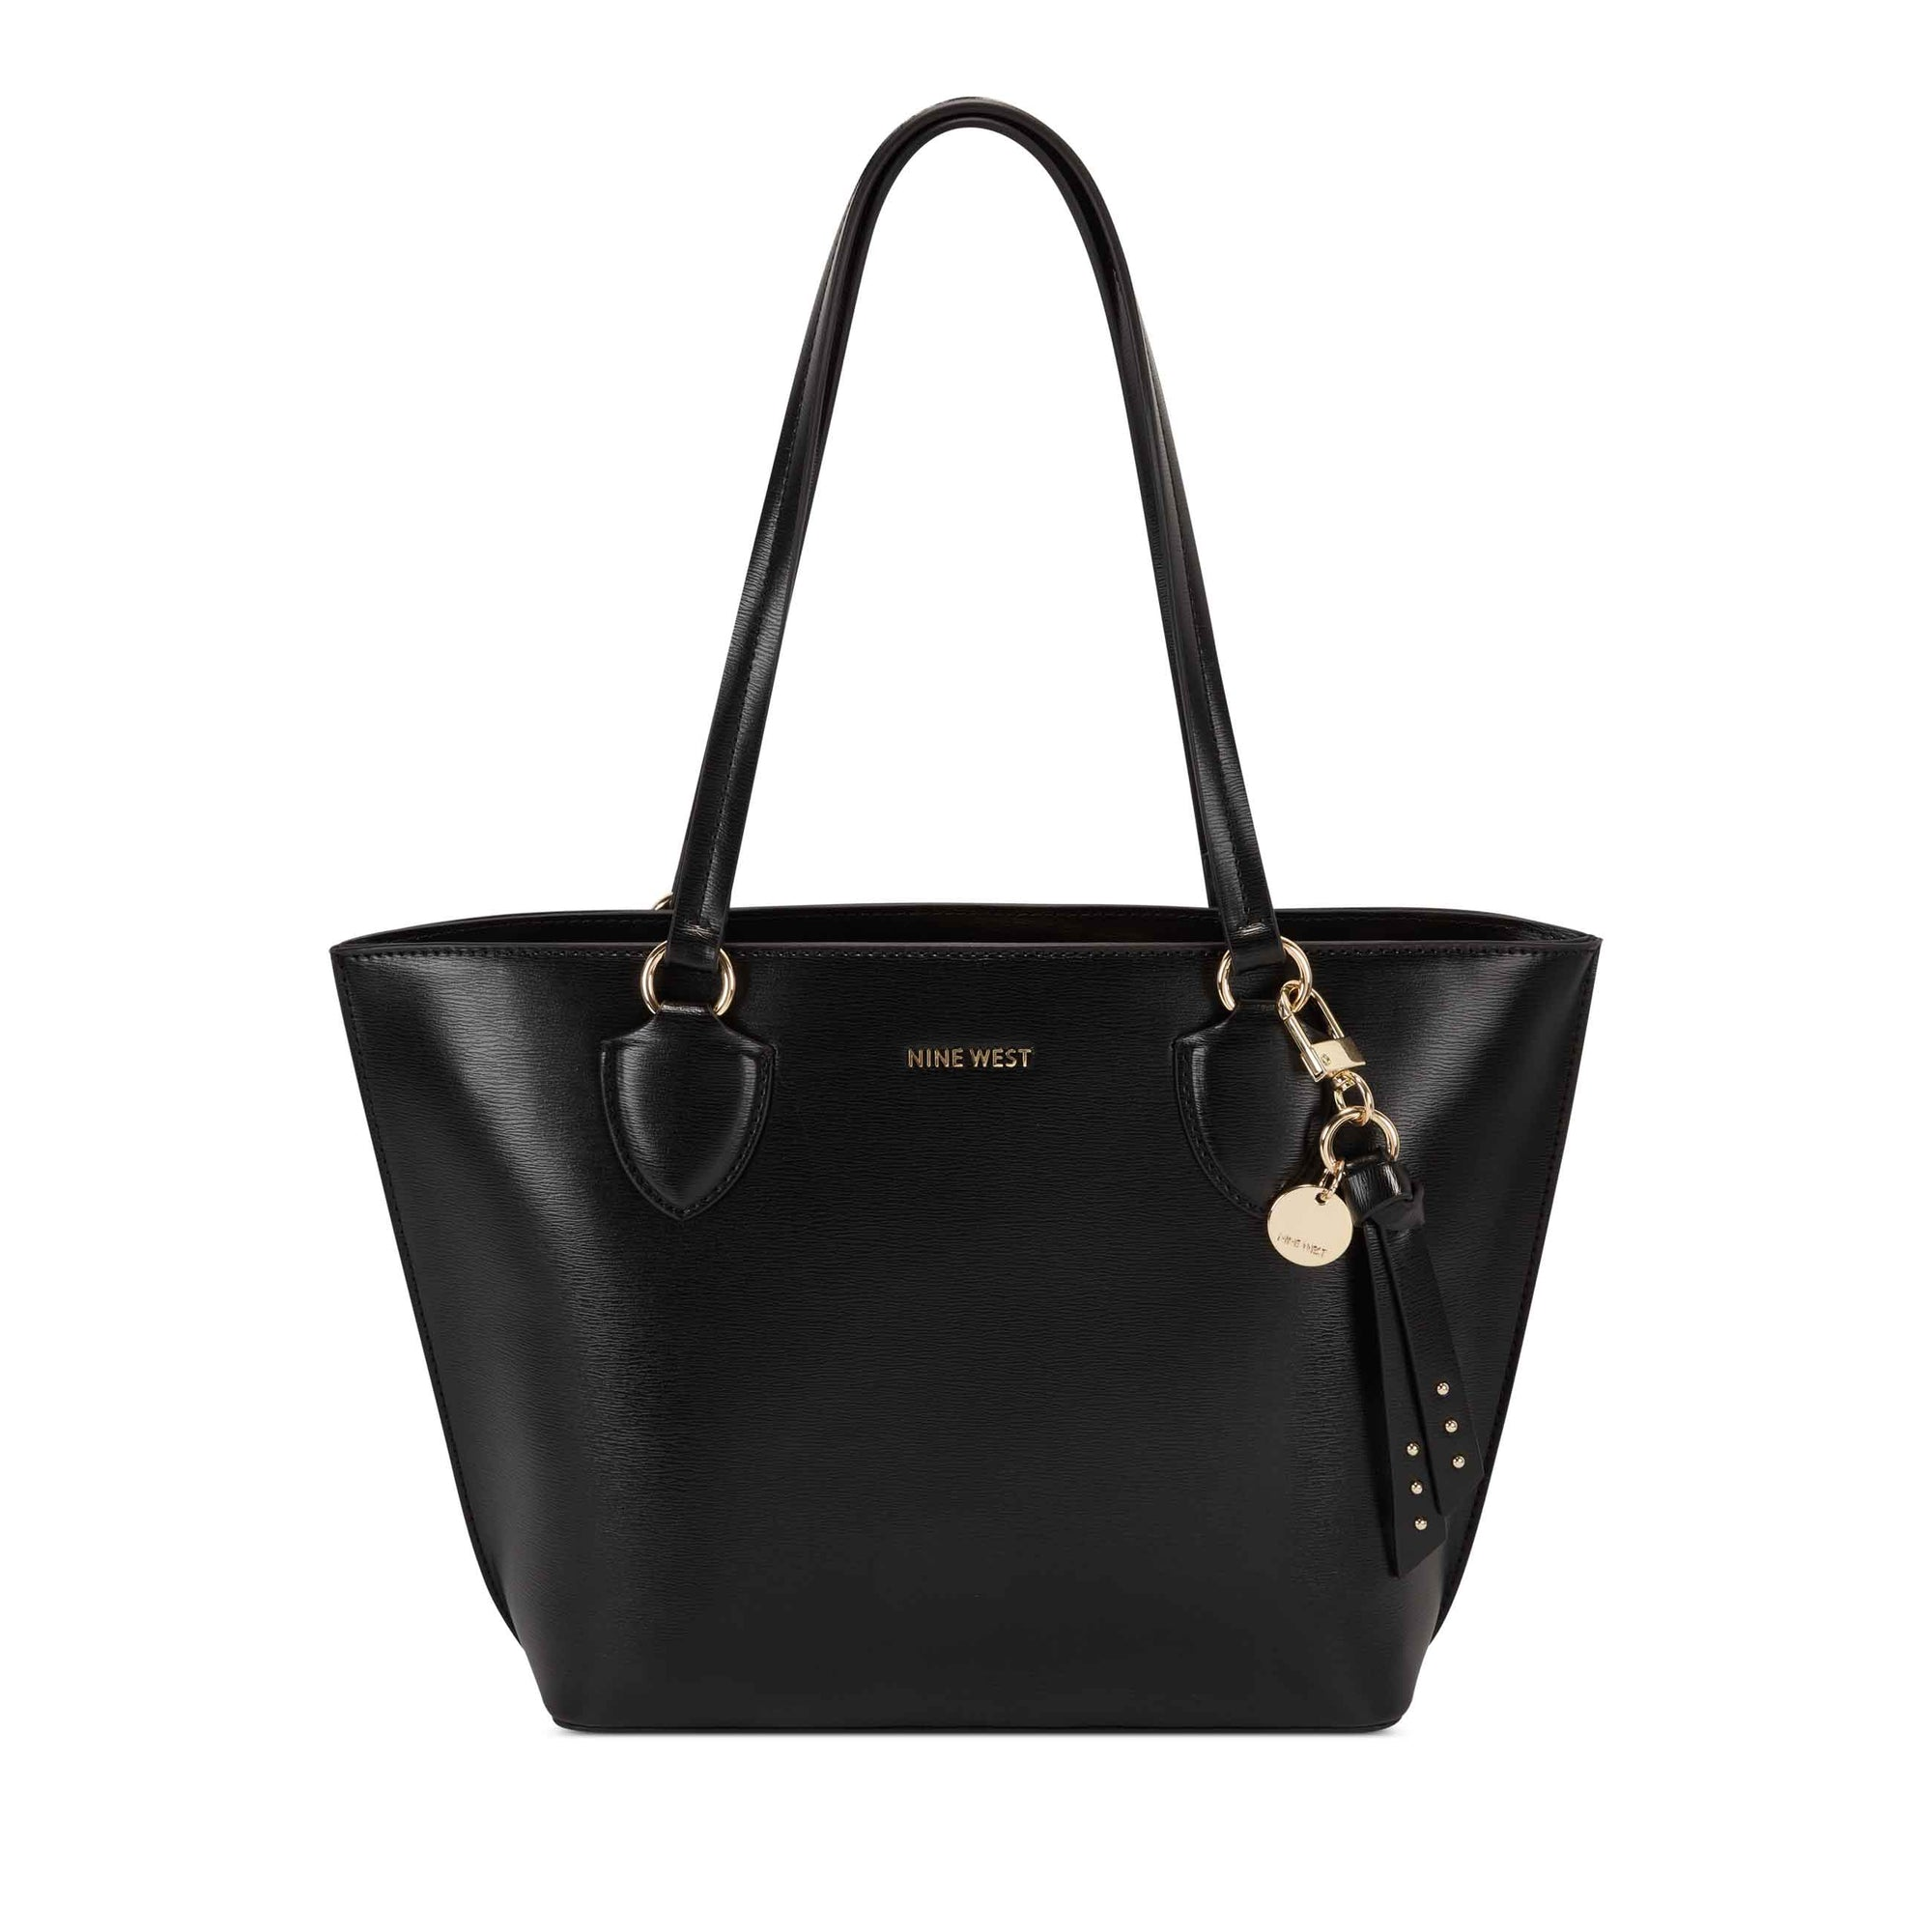 payton-small-tote-in-black